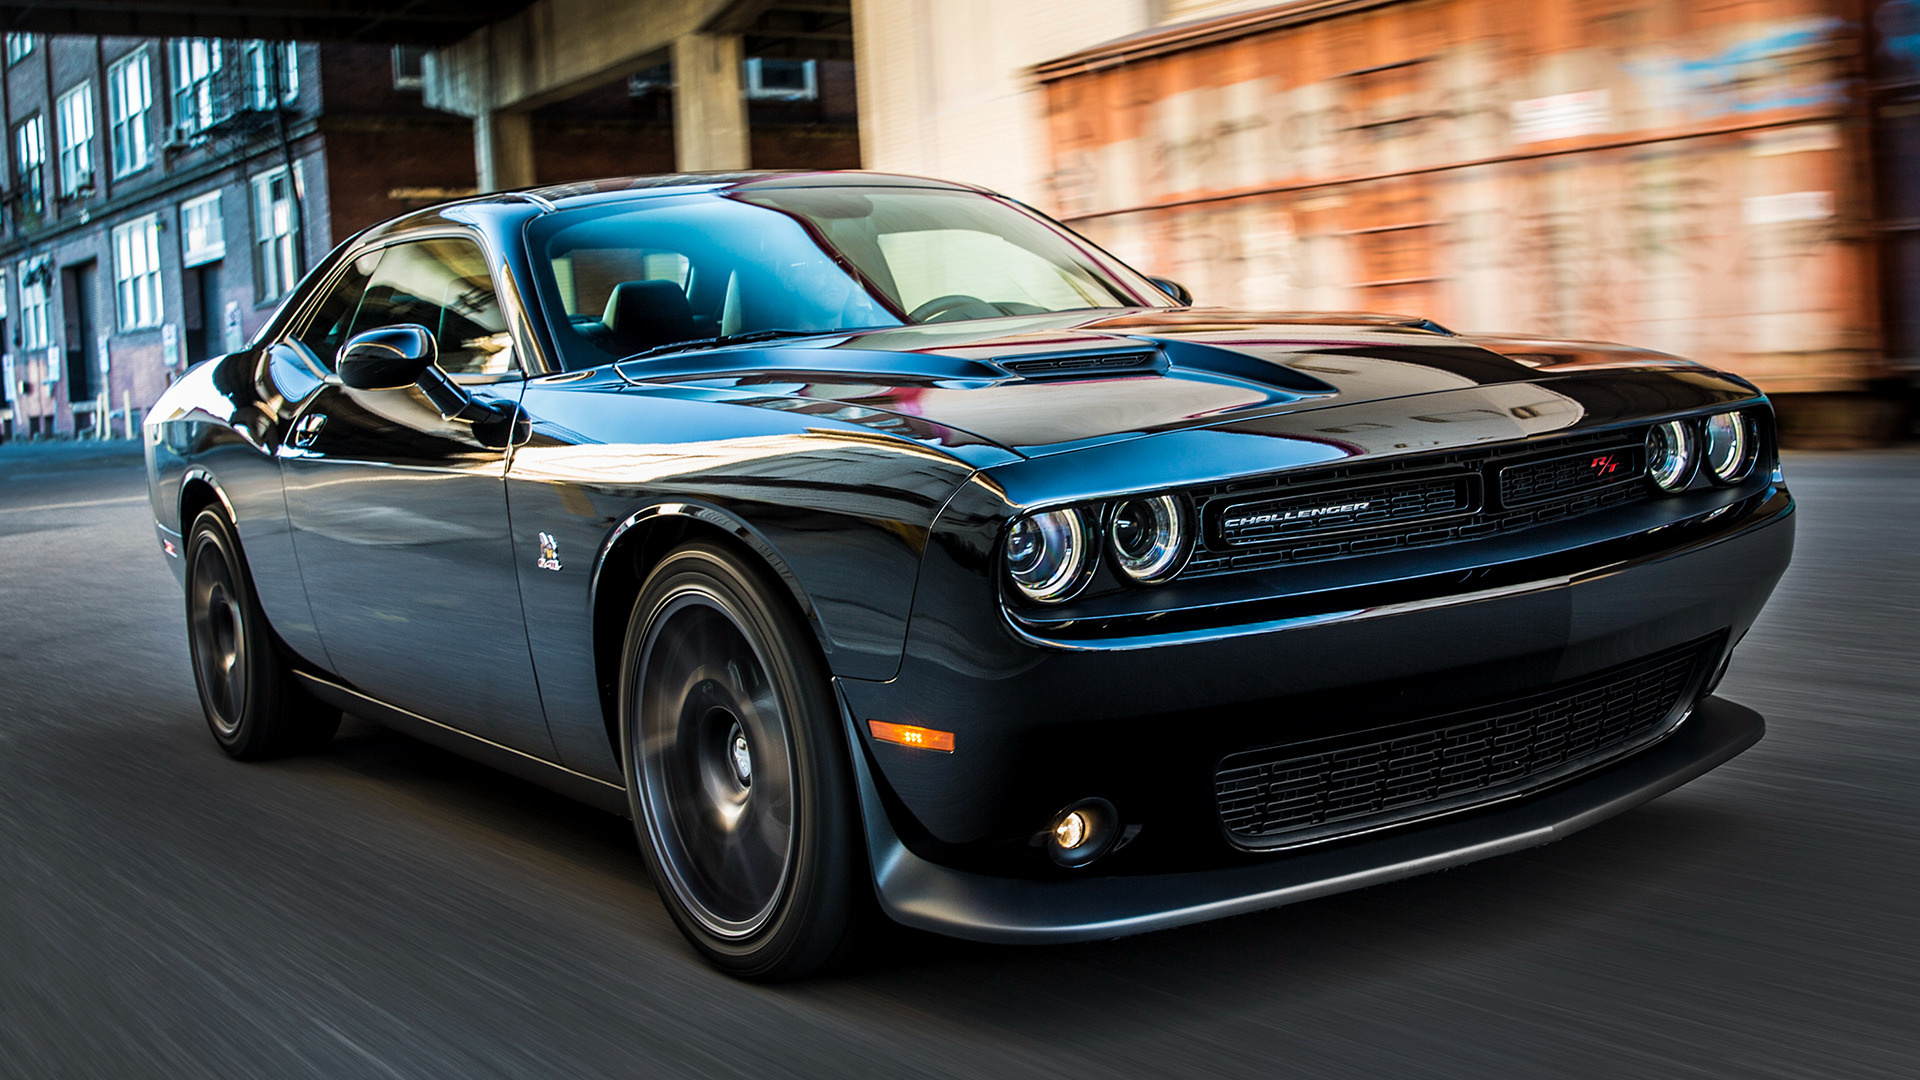 dodge challenger r t scat pack 2015 wallpapers and hd images car pixel. Black Bedroom Furniture Sets. Home Design Ideas